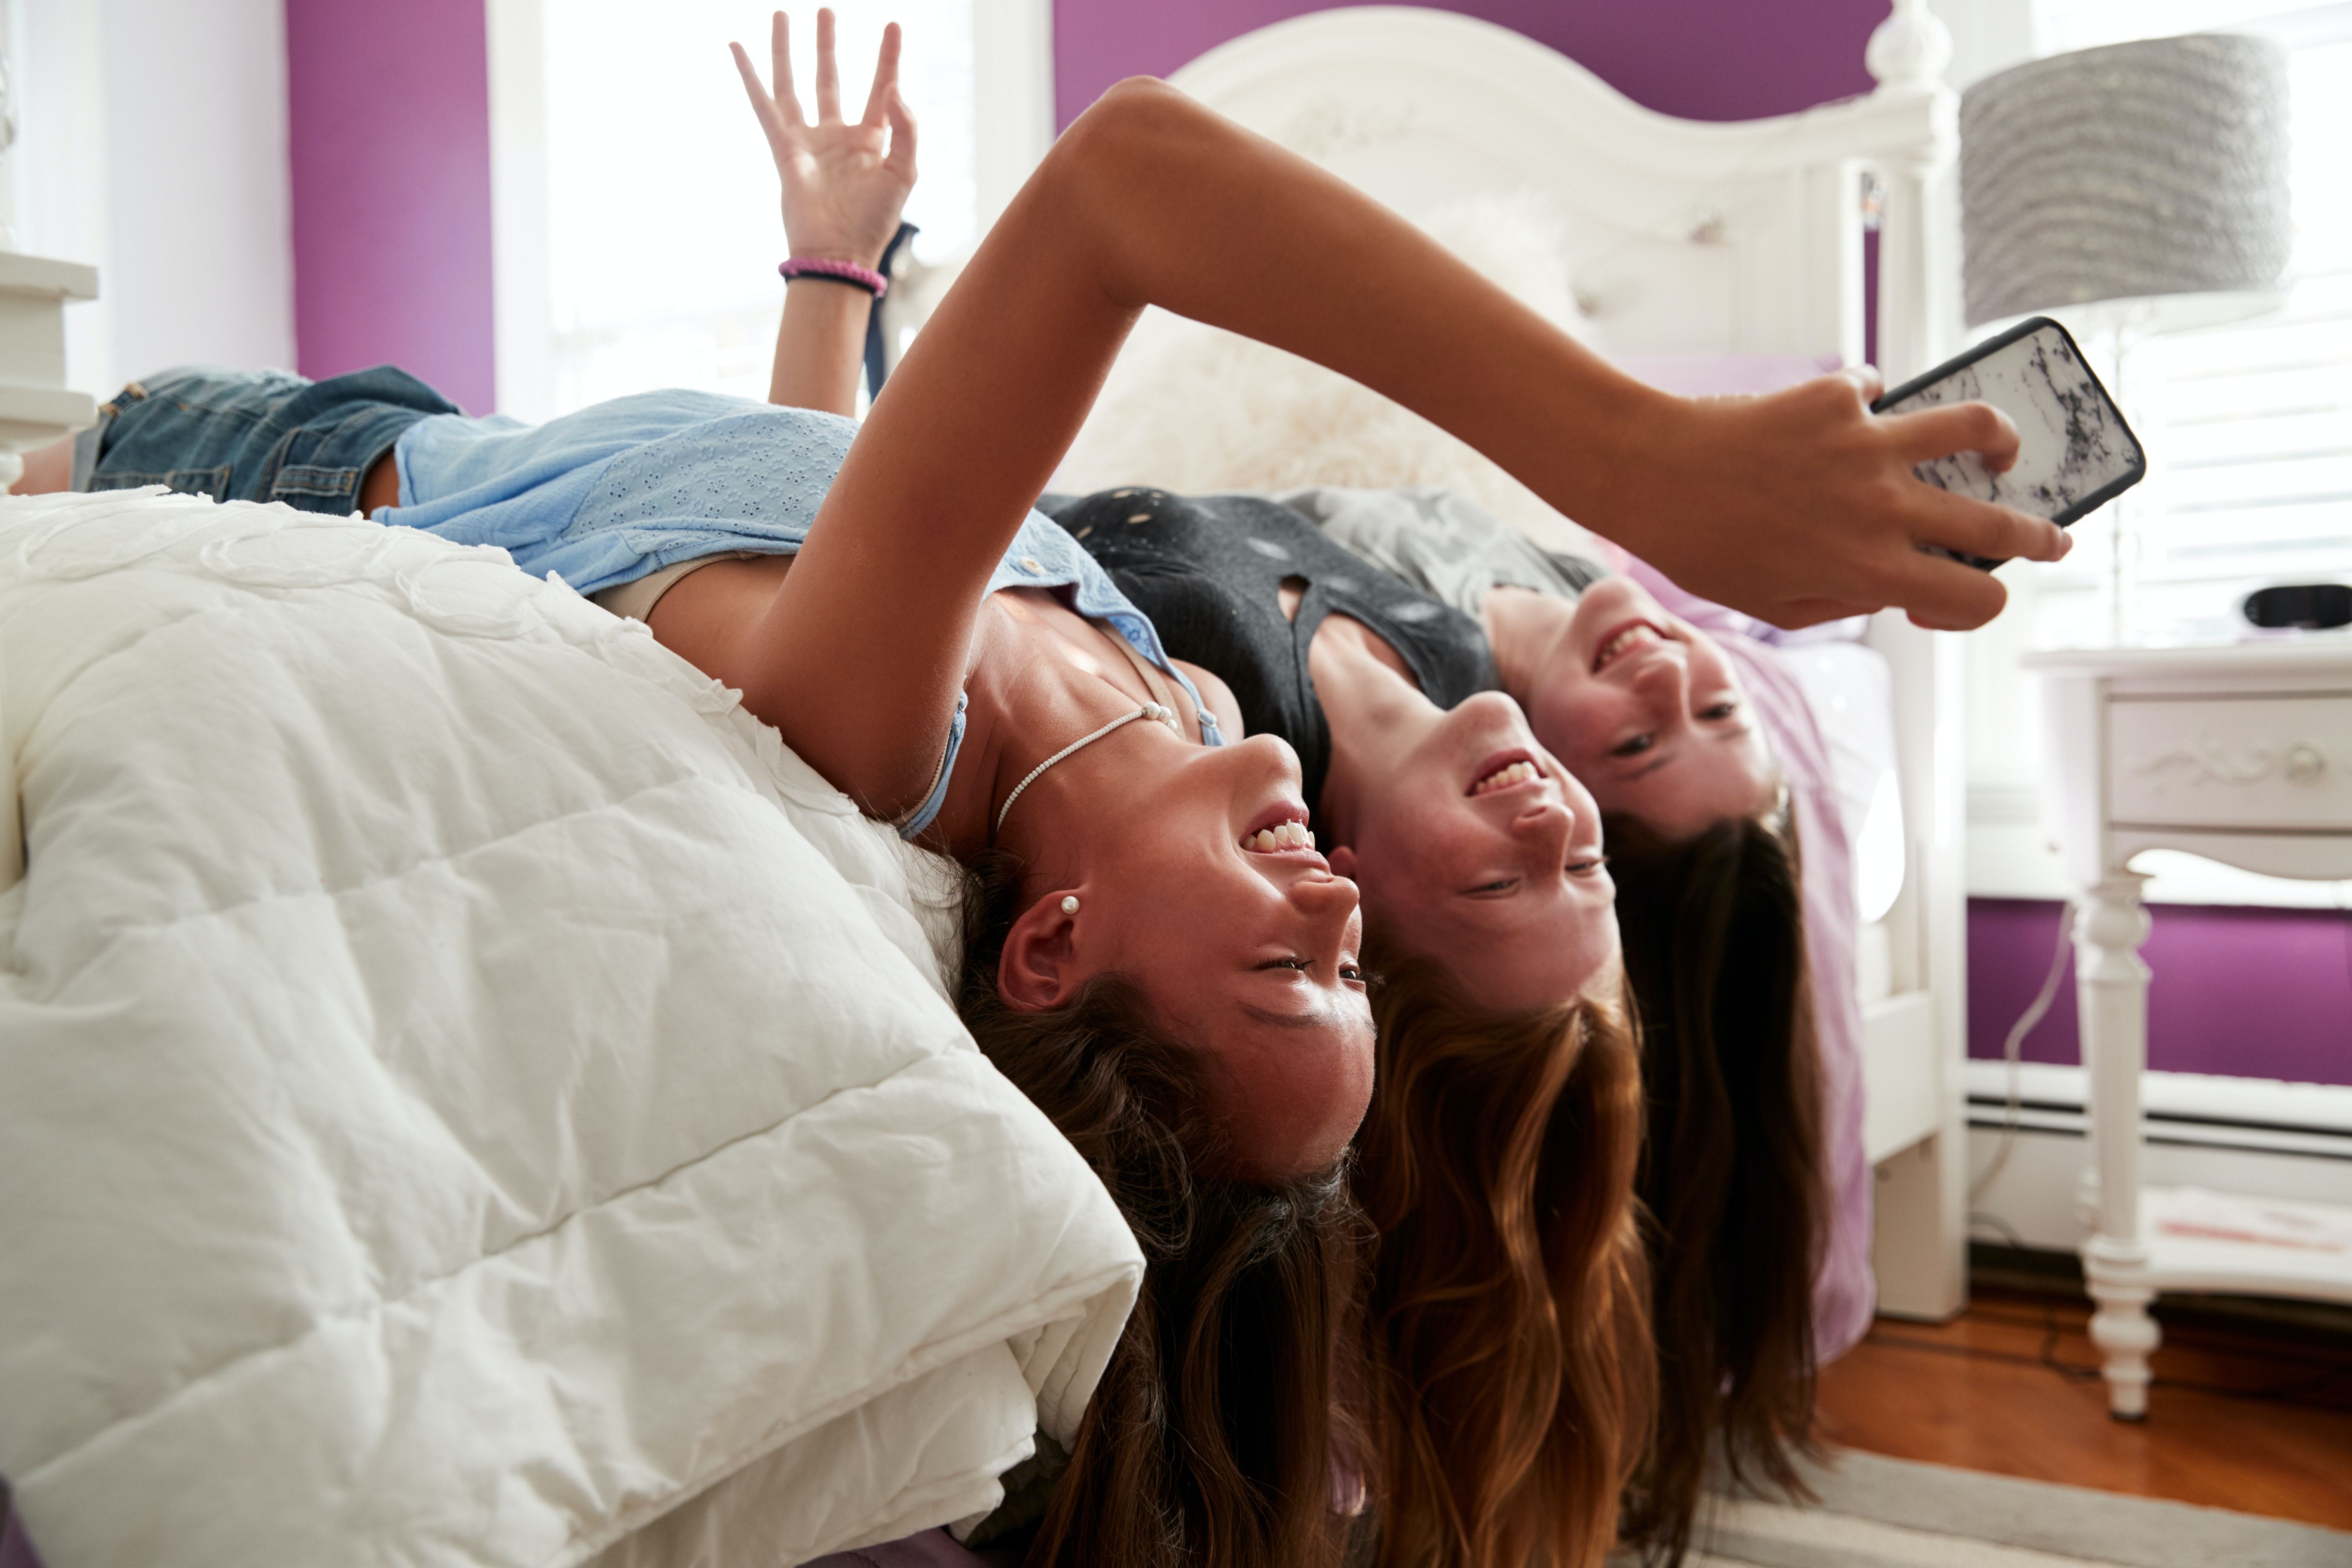 Teenagers need our support, not criticism, as they navigate life online